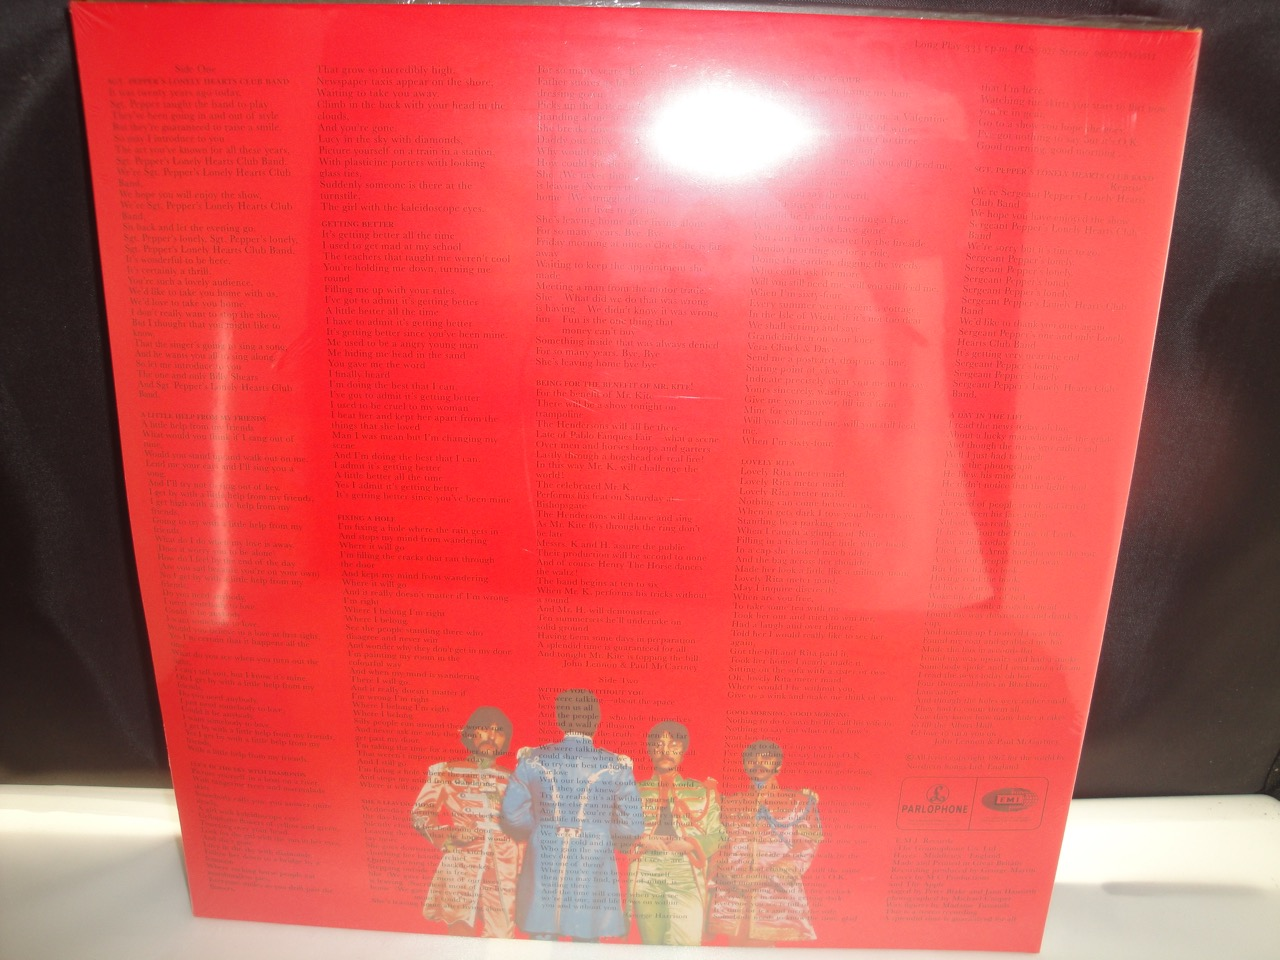 Beatles - Sgt. Pepper's Lonely Hearts Club Band - 2017 2XLP Vinyl